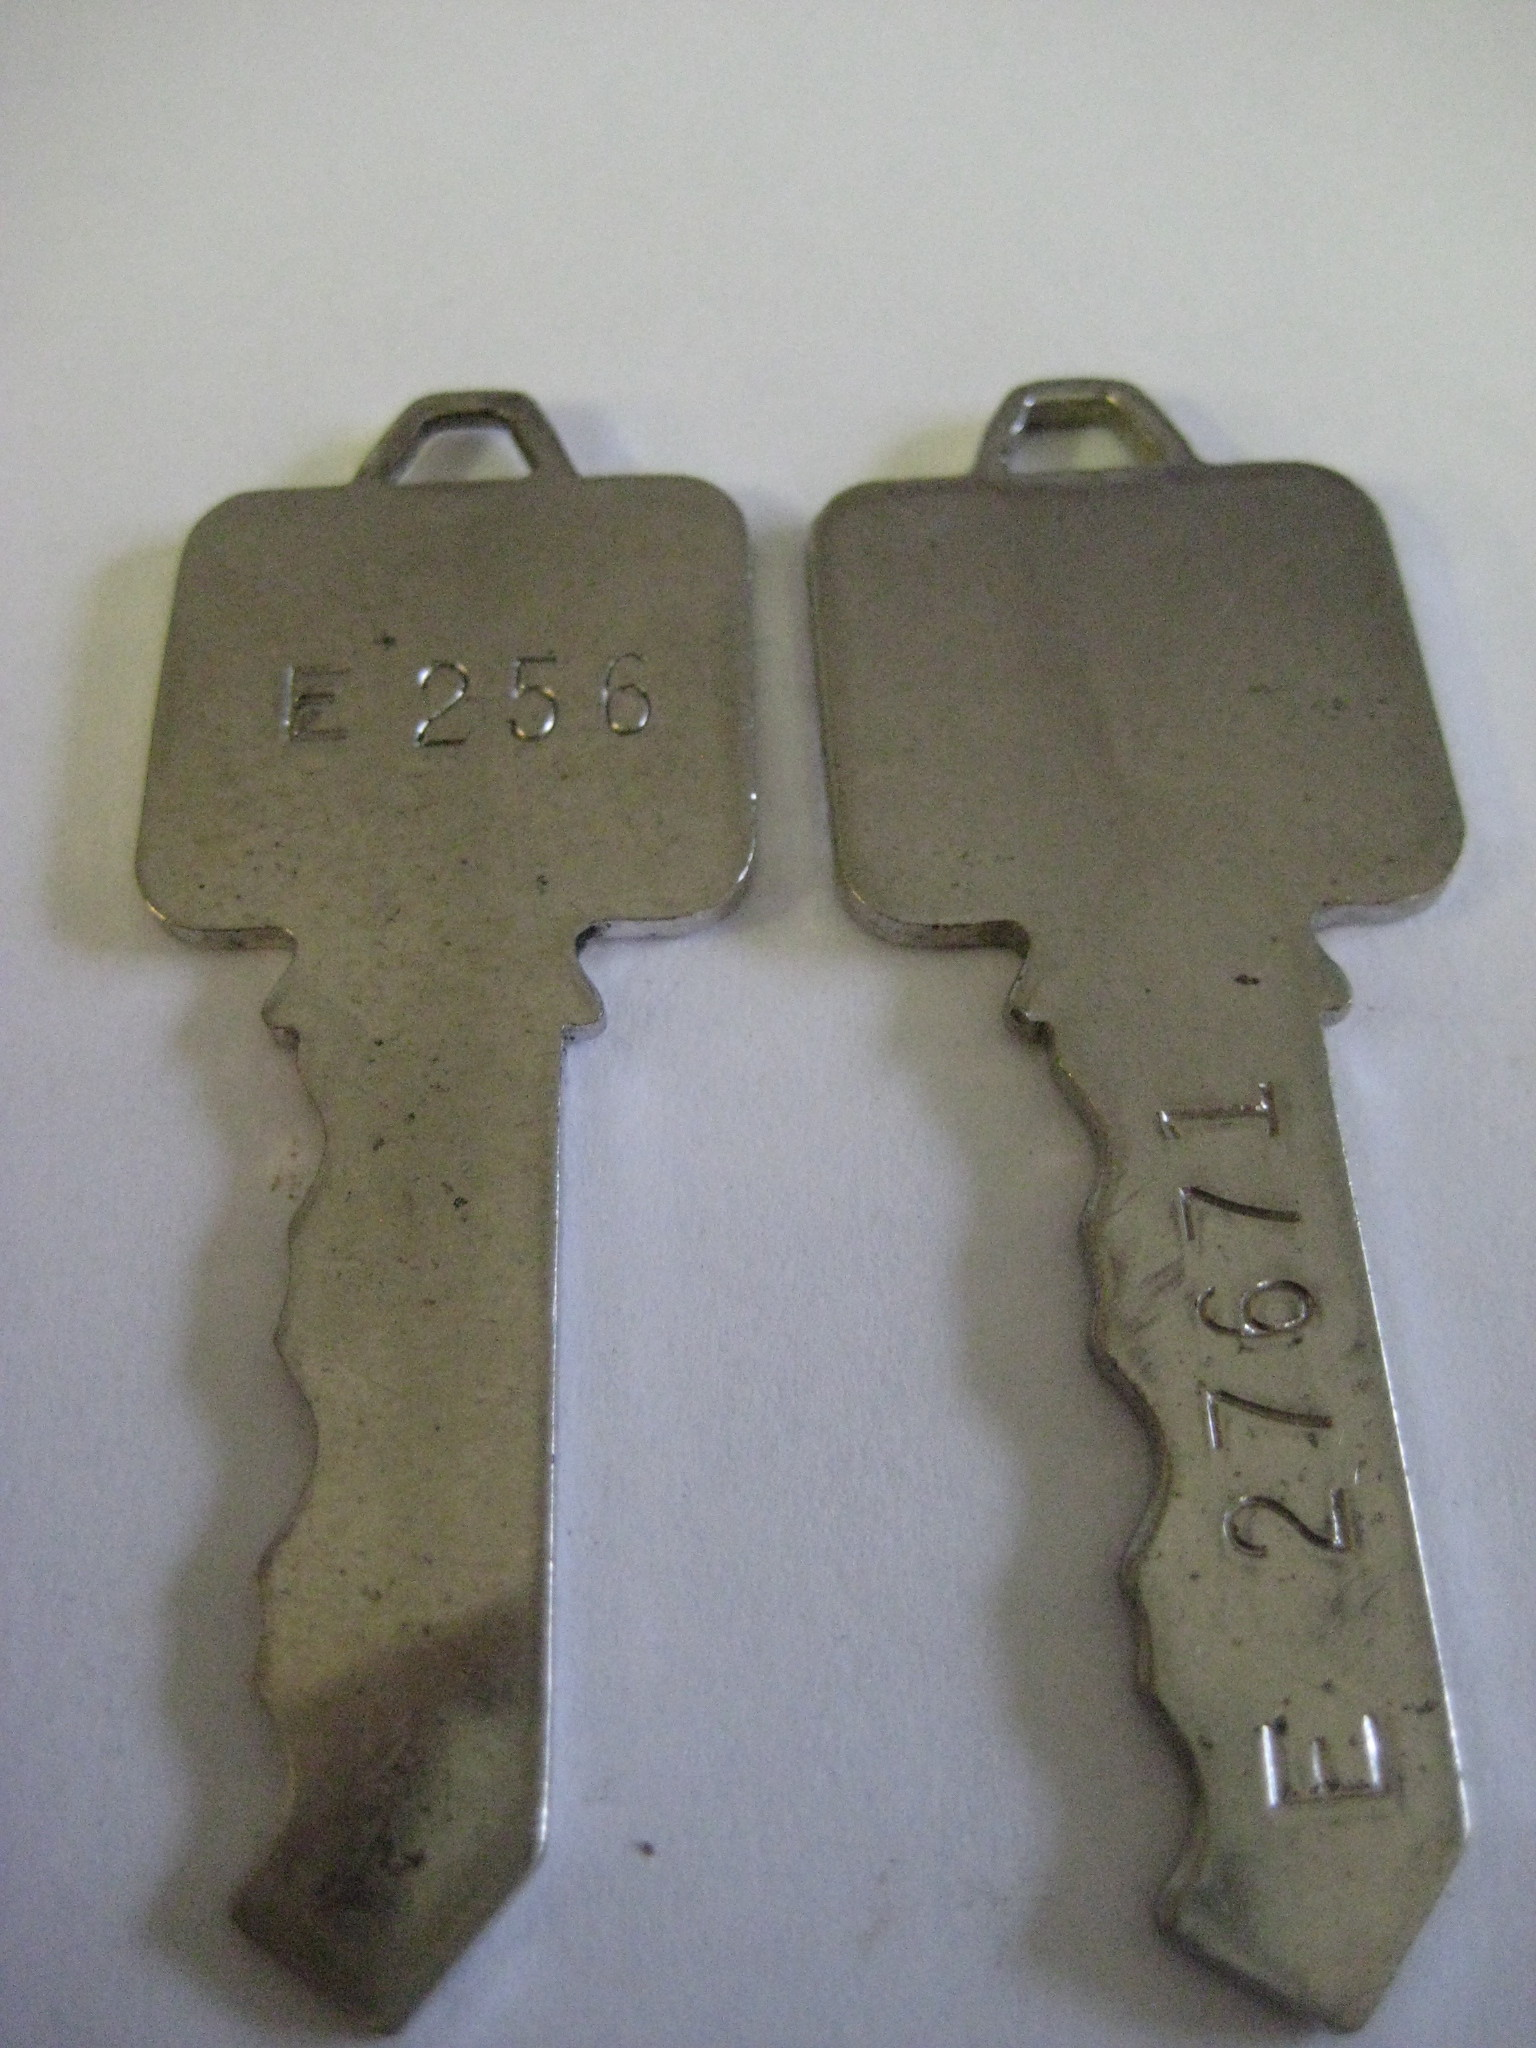 London Playboy Club Keys